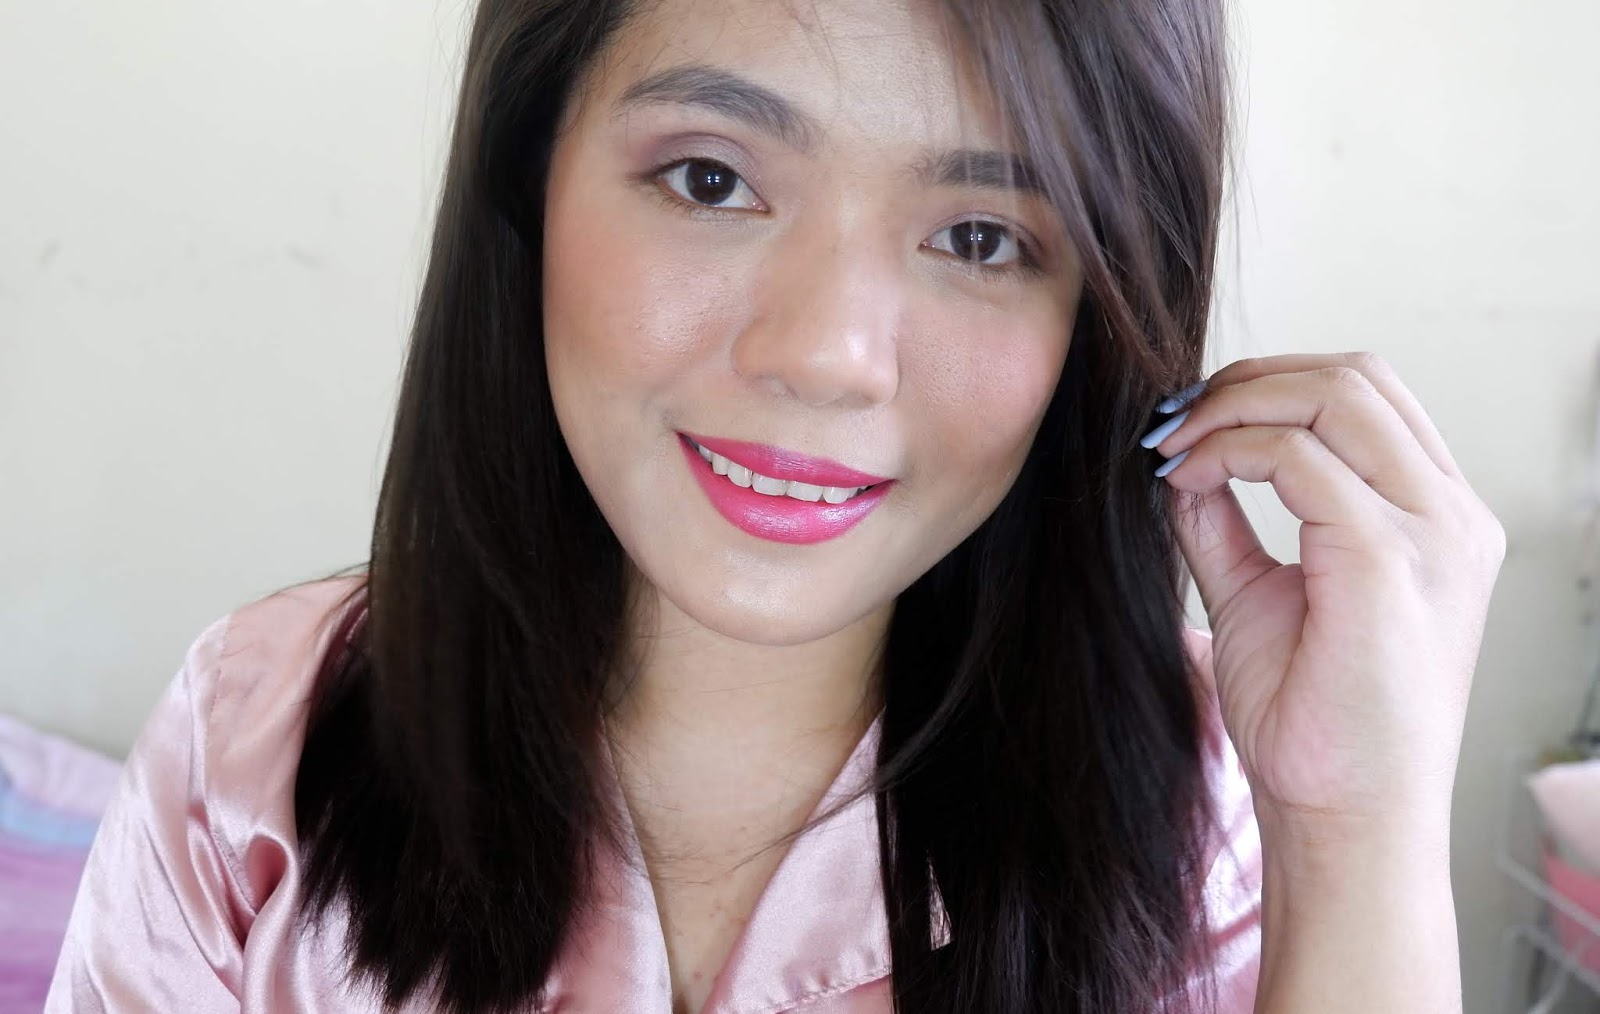 AVON MARK EPIC LIPSTICK REVIEW